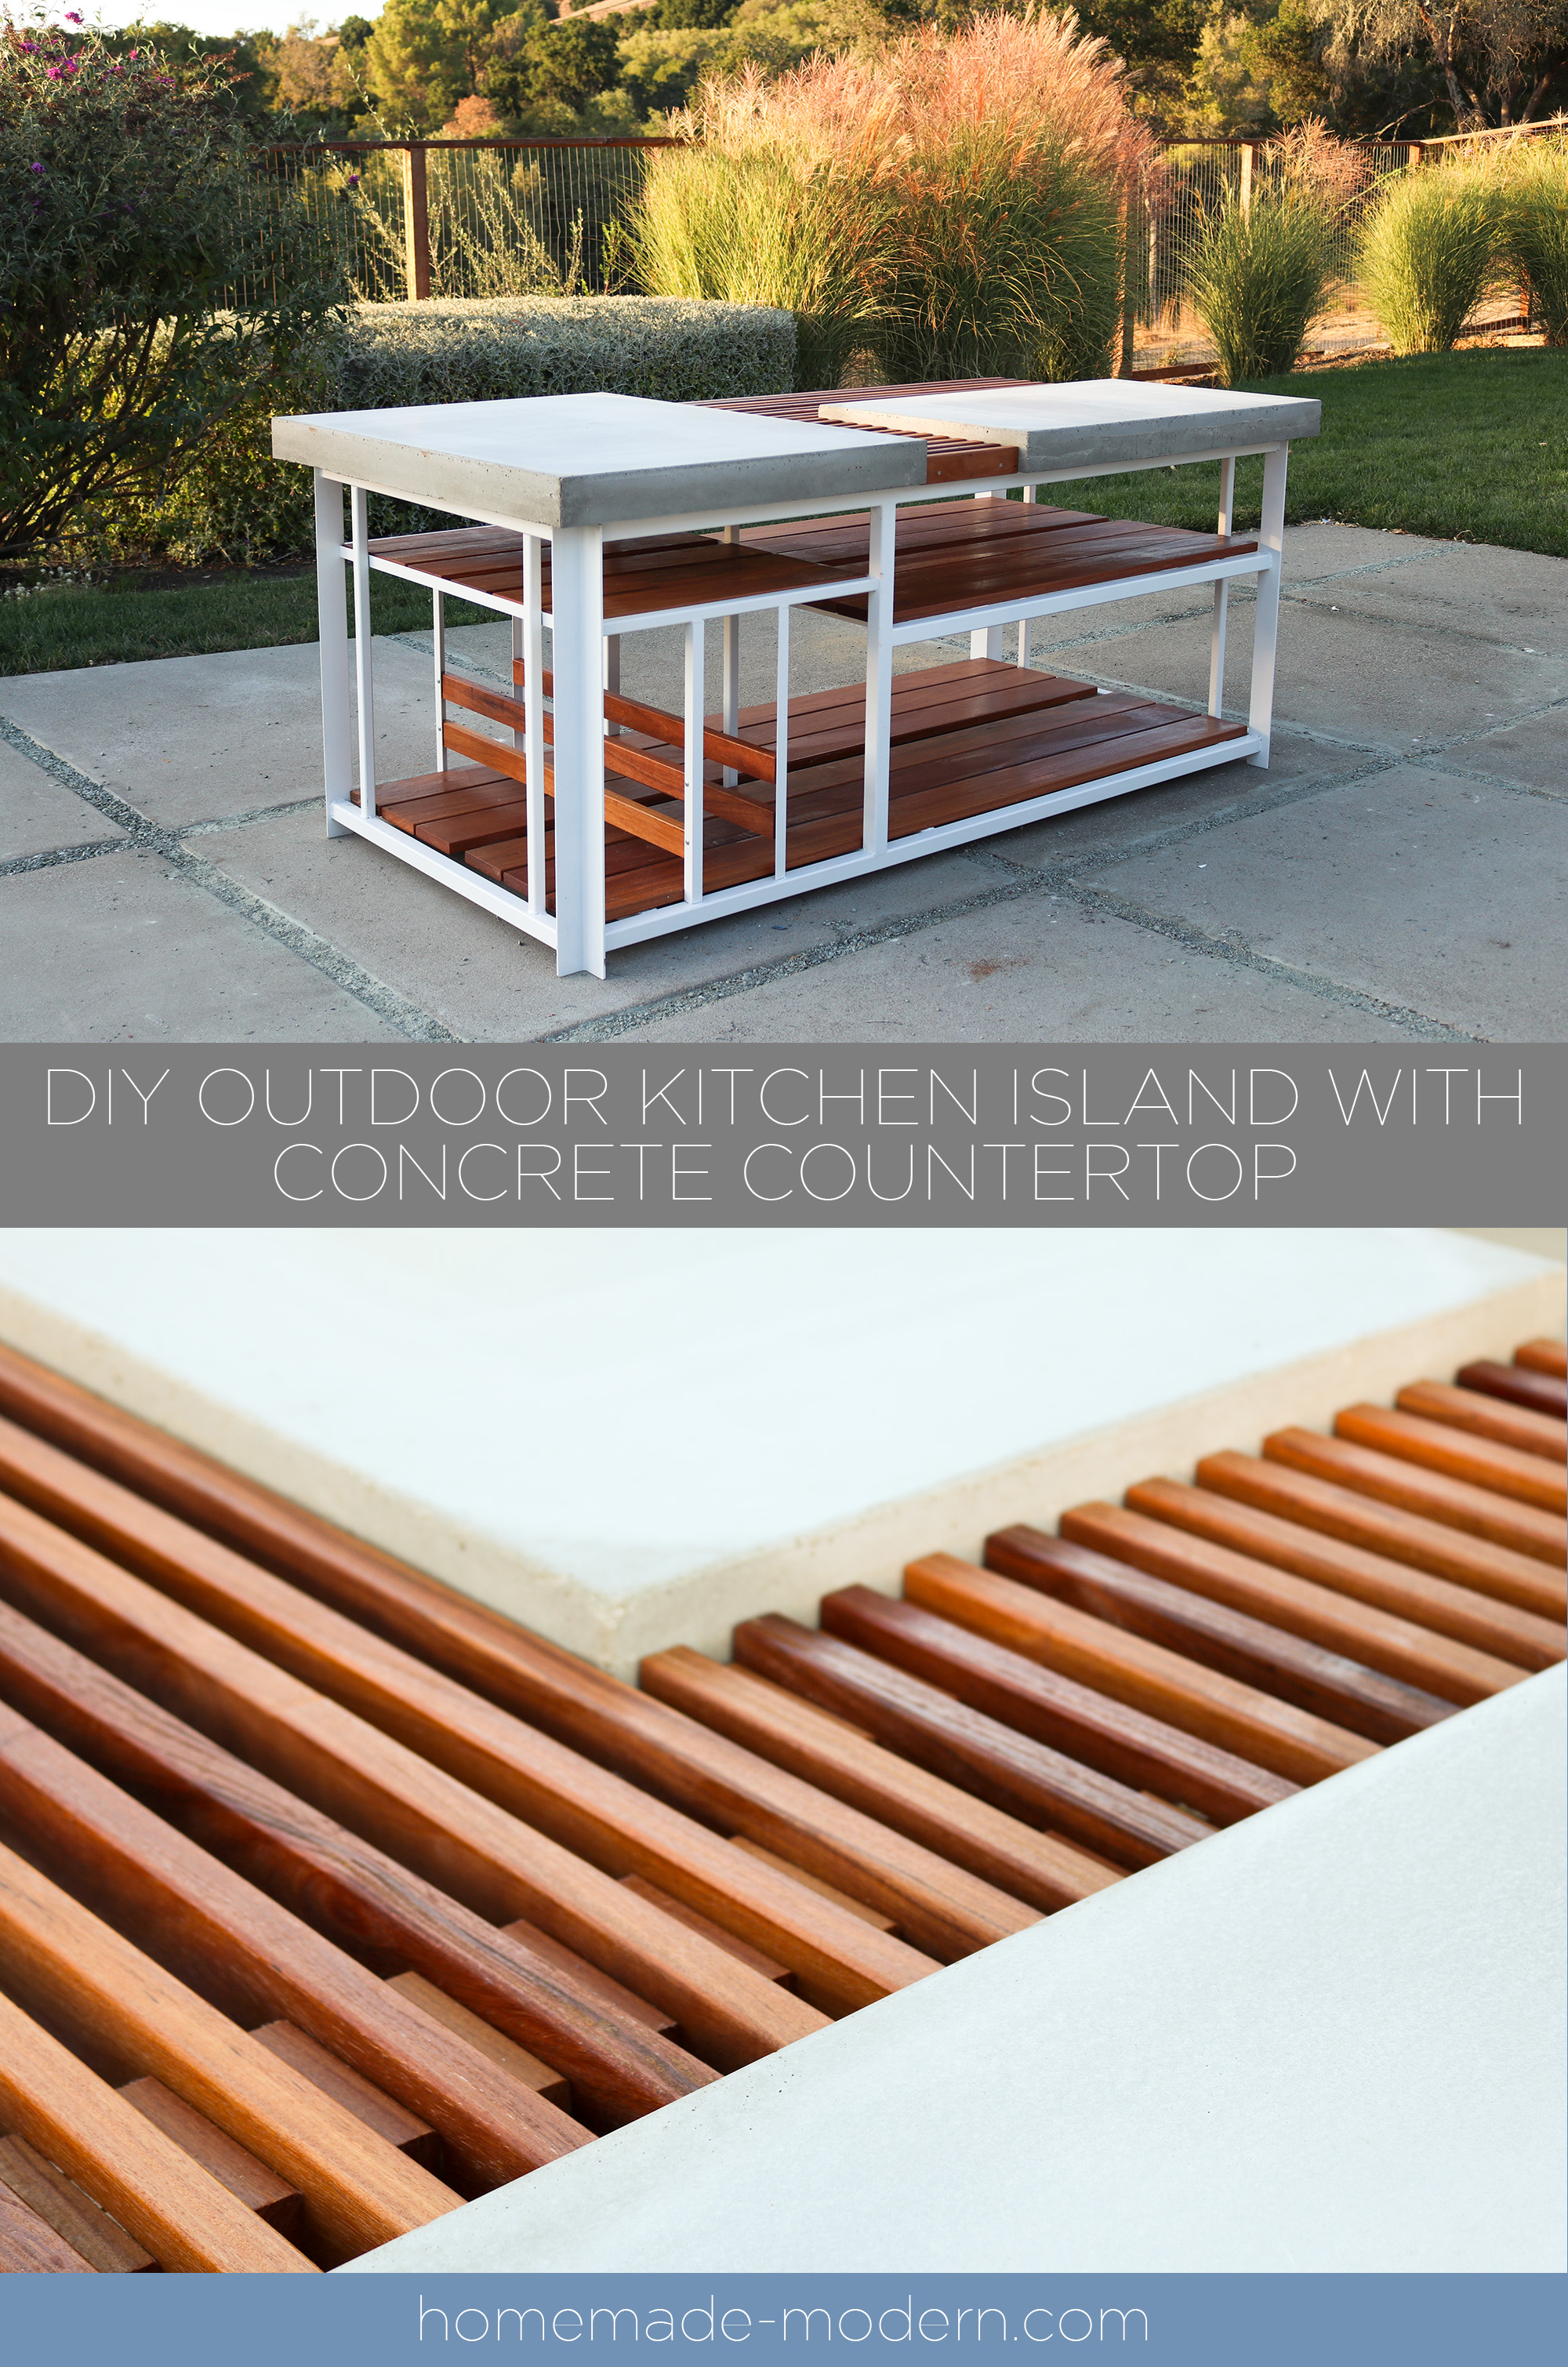 Homemade Modern Ep142 Diy Outdoor Kitchen Island With Diy Concrete Countertops